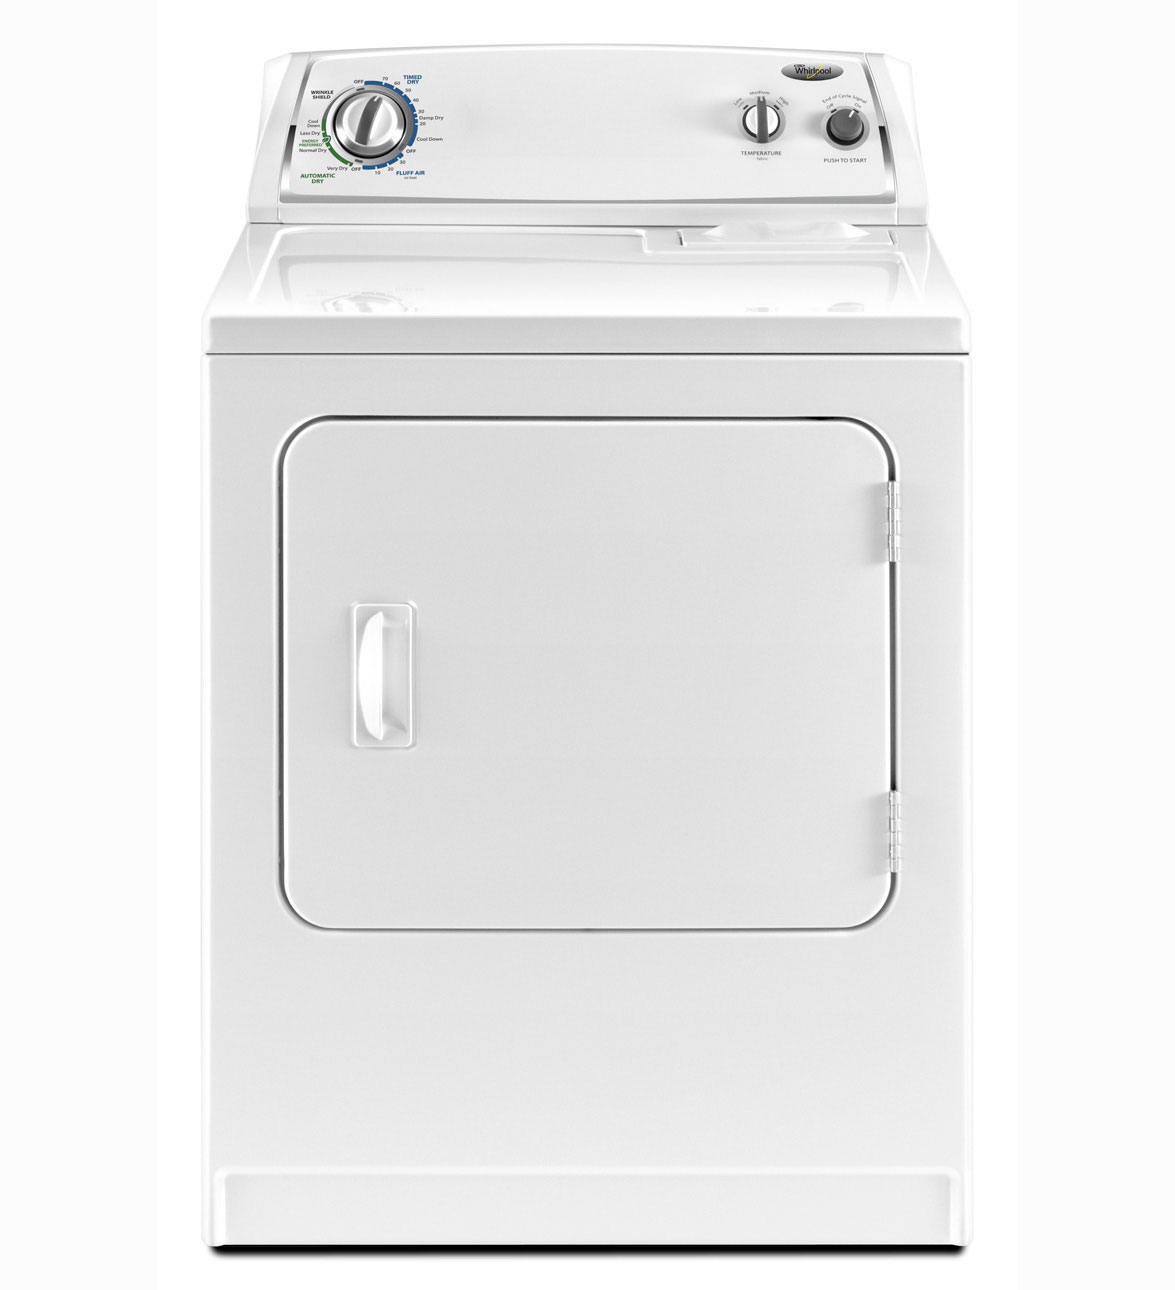 Review of Whirlpool 7 cu ft Electric Dryer (White) (Model: WED4800XQ)